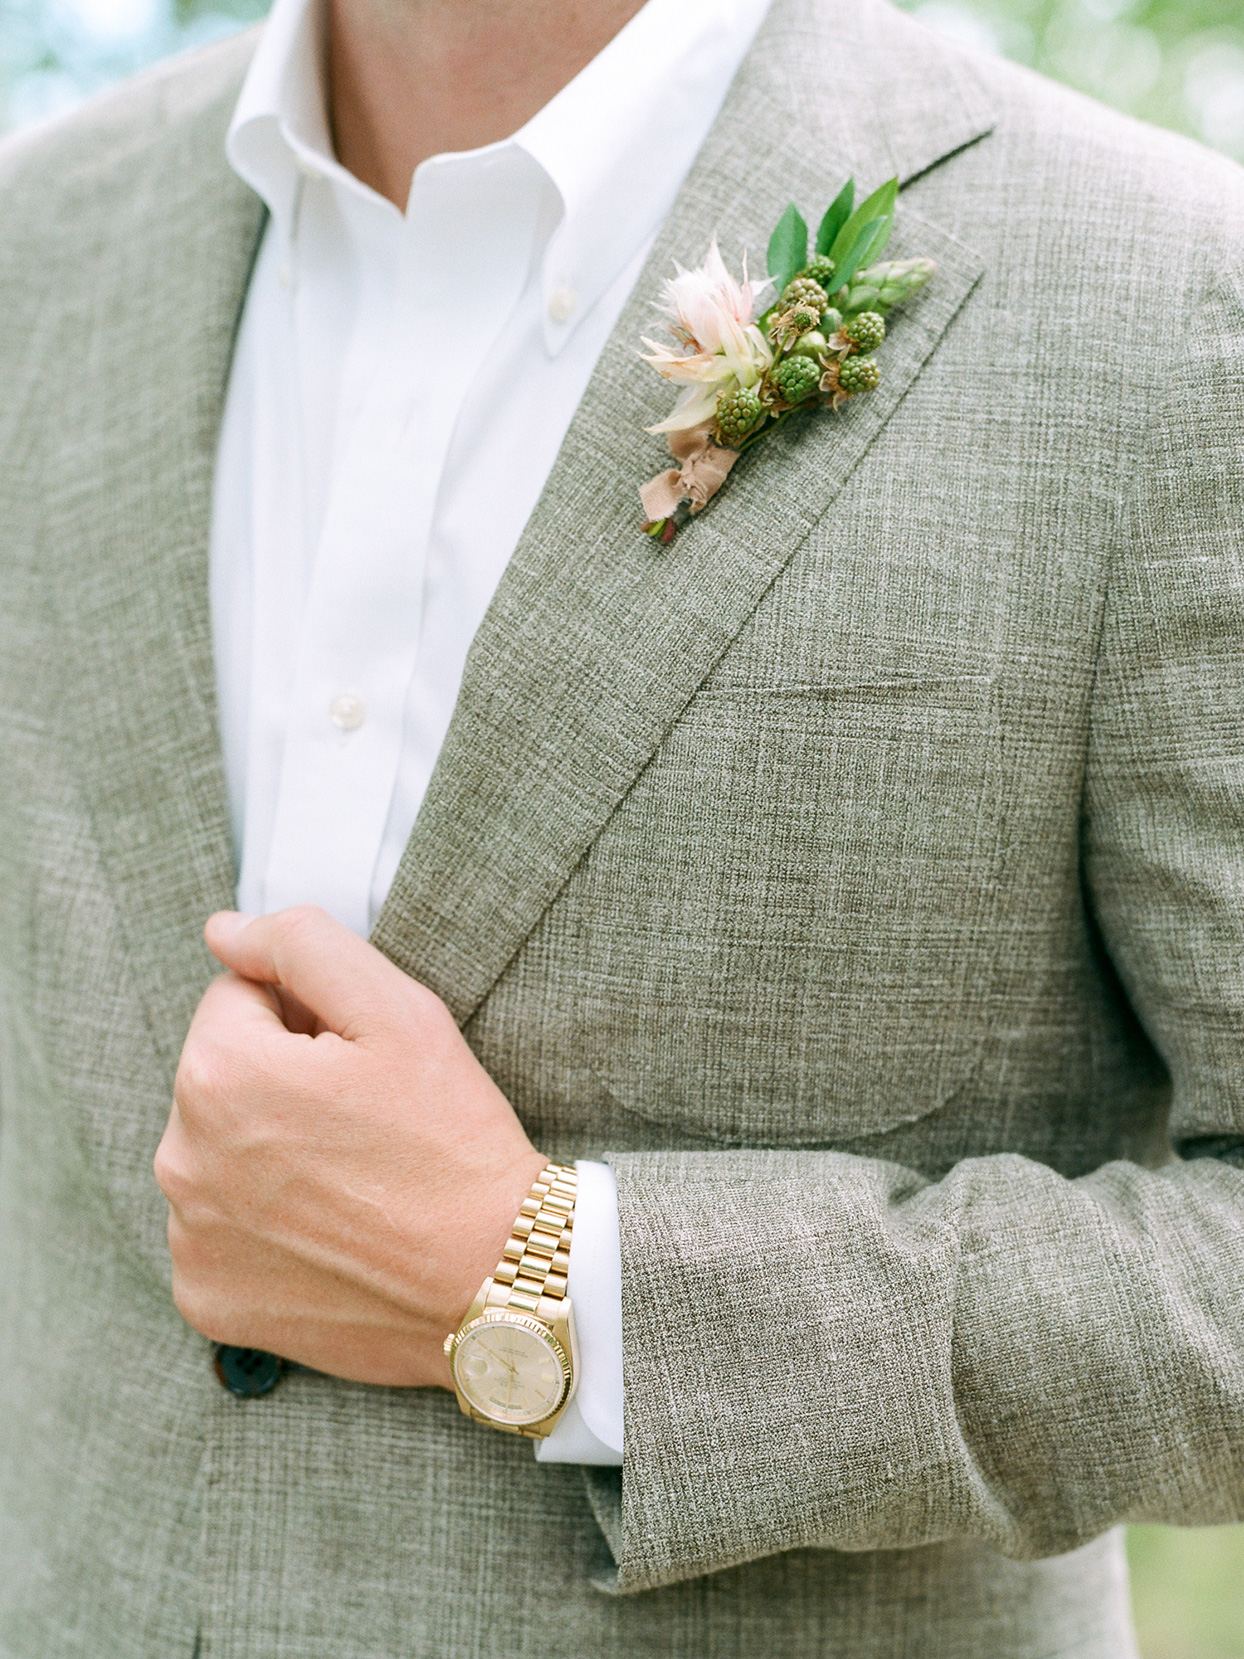 logan conor wedding boutonniere on groom's suit